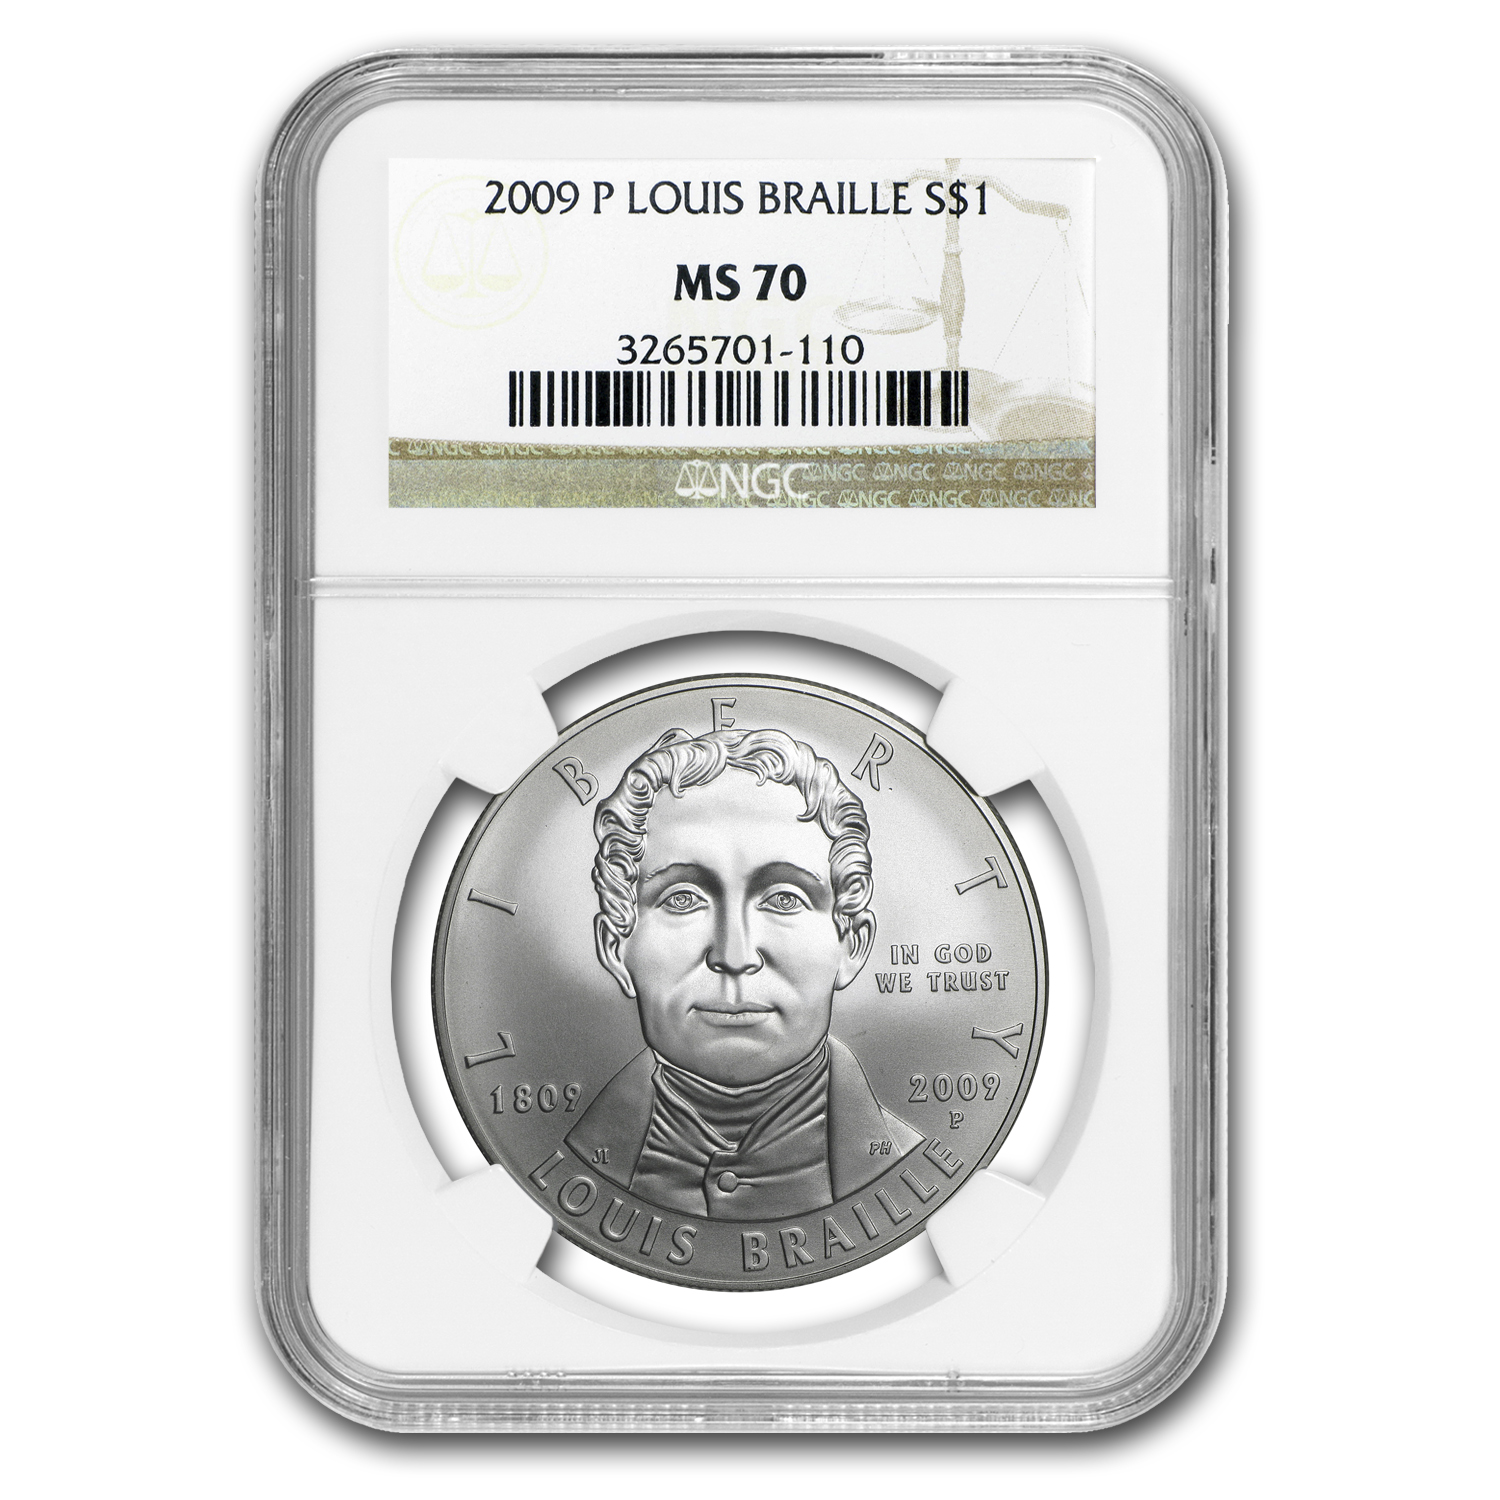 2009-P Louis Braille $1 Silver Commem MS-70 NGC